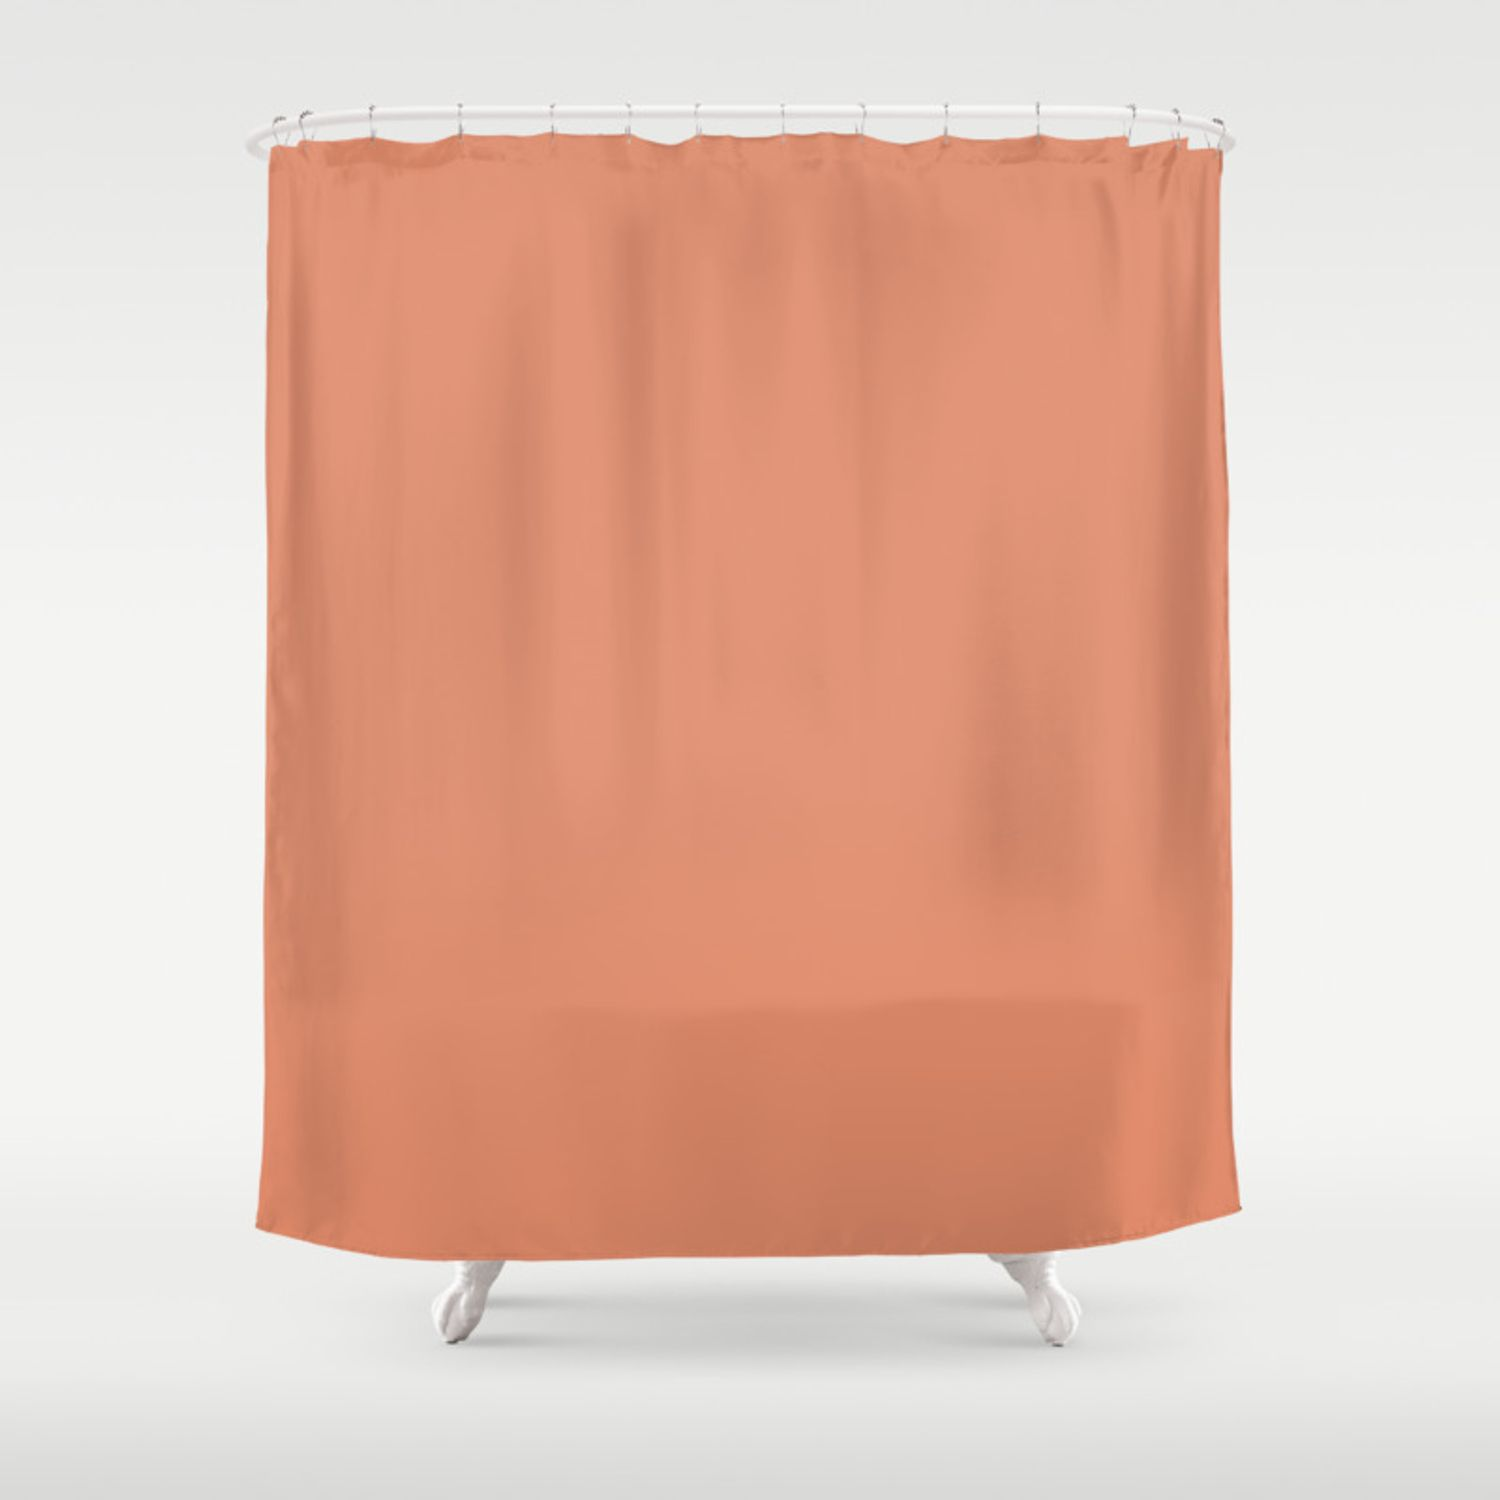 13 Brilliant Ways How To Build Salmon Colored Shower Curtain Di